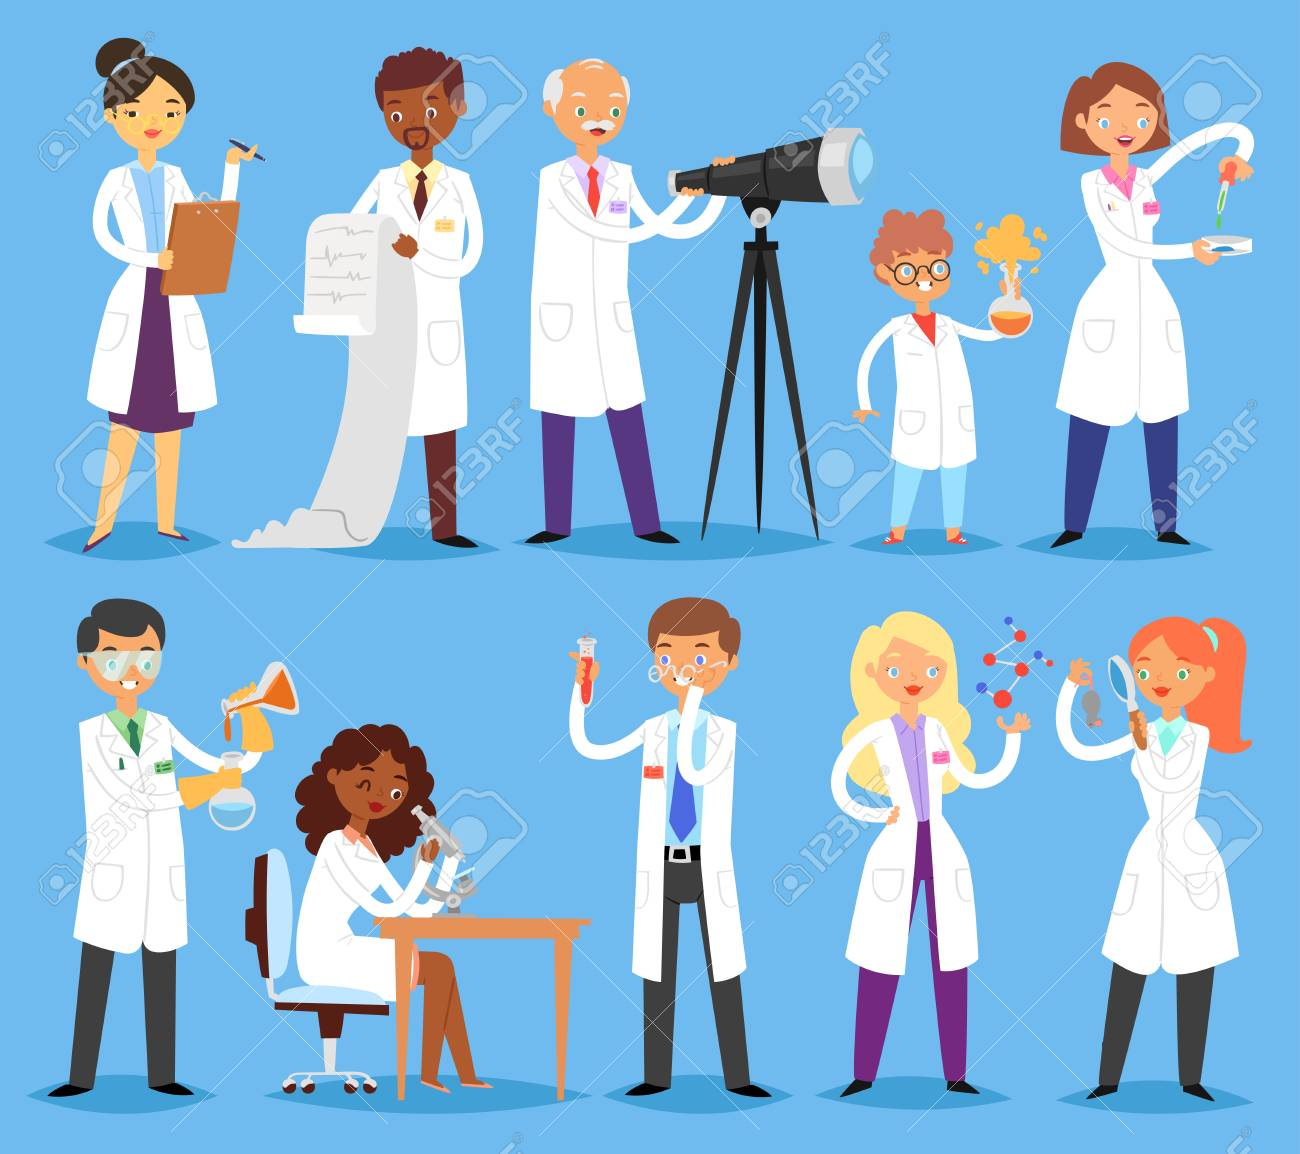 scientist vector professional people character chemist or doctor royalty free cliparts vectors and stock illustration image 102166461 scientist vector professional people character chemist or doctor